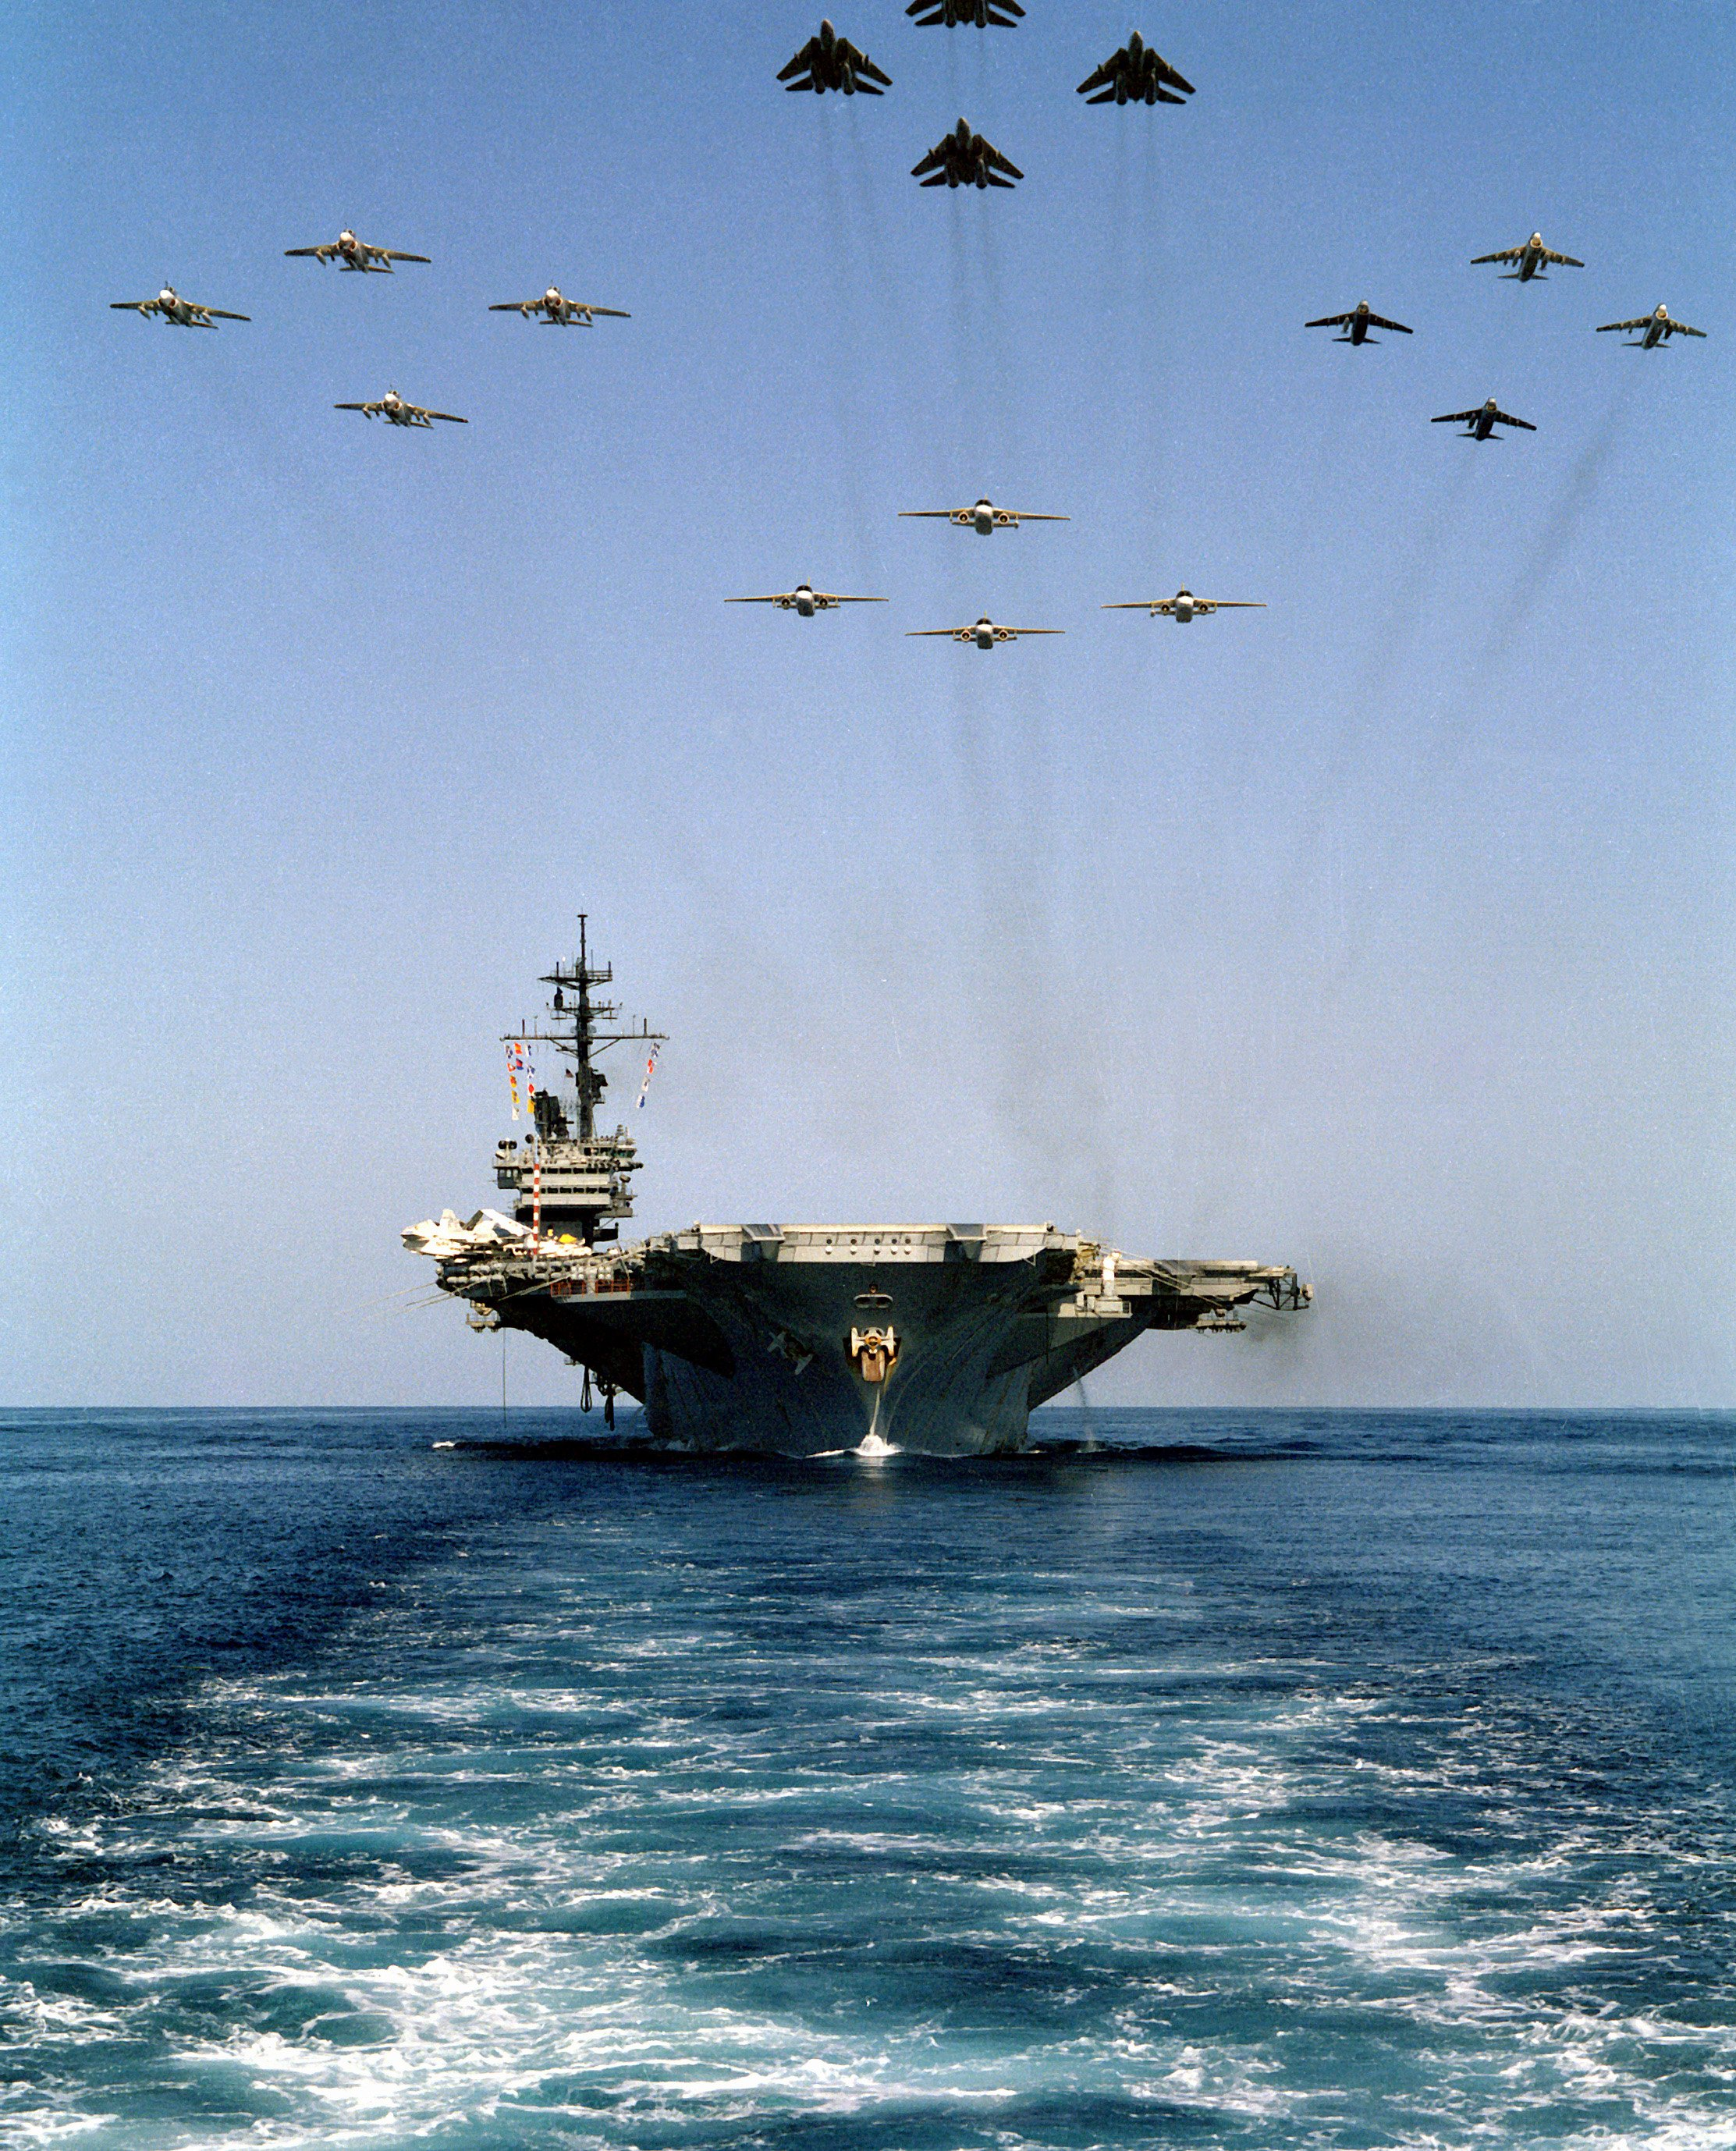 USS AMERICA (CV-66) underway as16 aircraft from Carrier Air Wing One (CVW-1) fly overhead in 1983. US Navy Photo